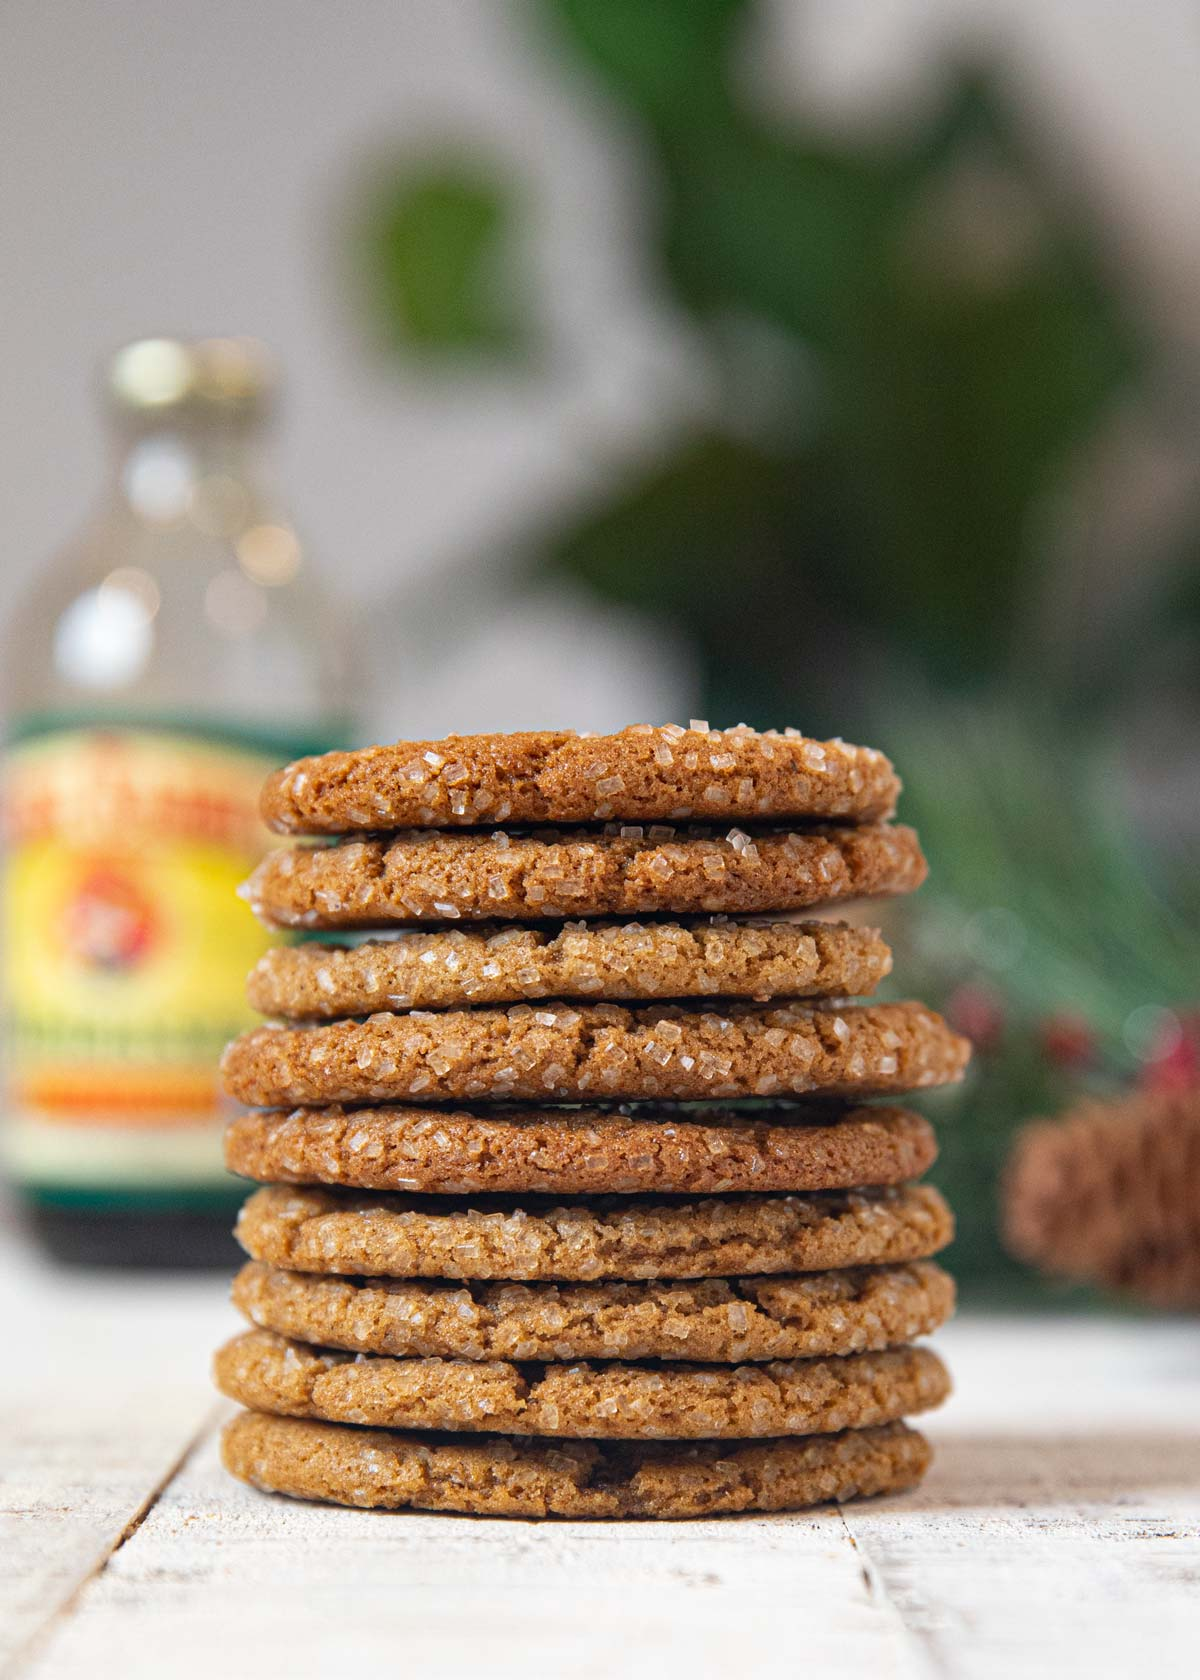 Chewy Healthy Ginger Cookies Recipe Cooking Made Healthy